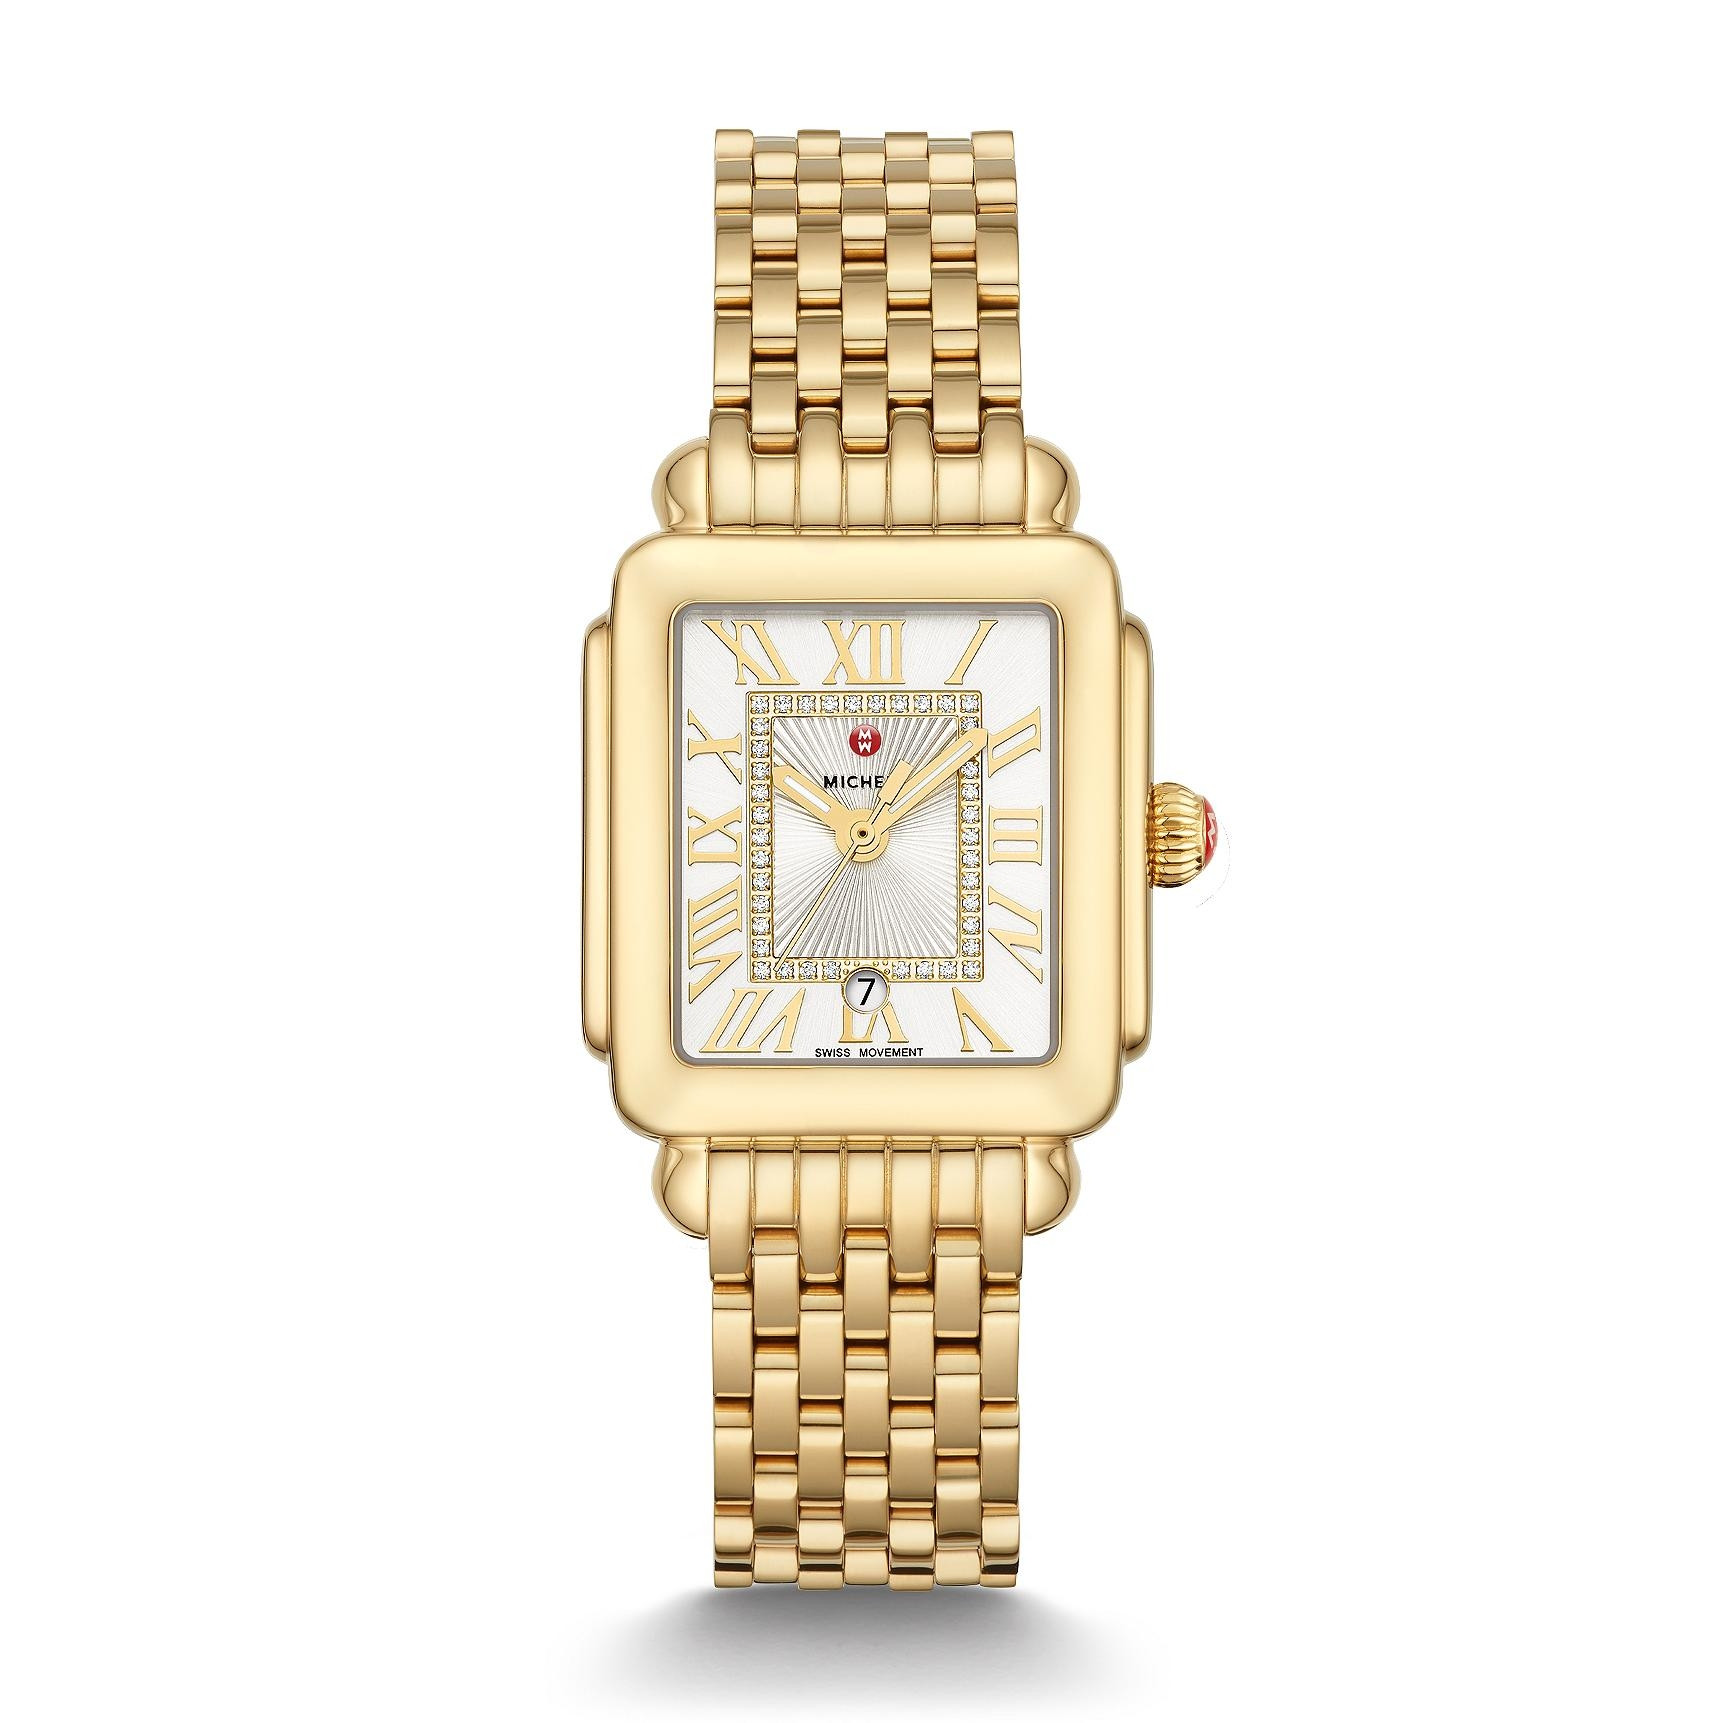 Michele Deco Madison Mid Diamond Dial Watch in Gold full view